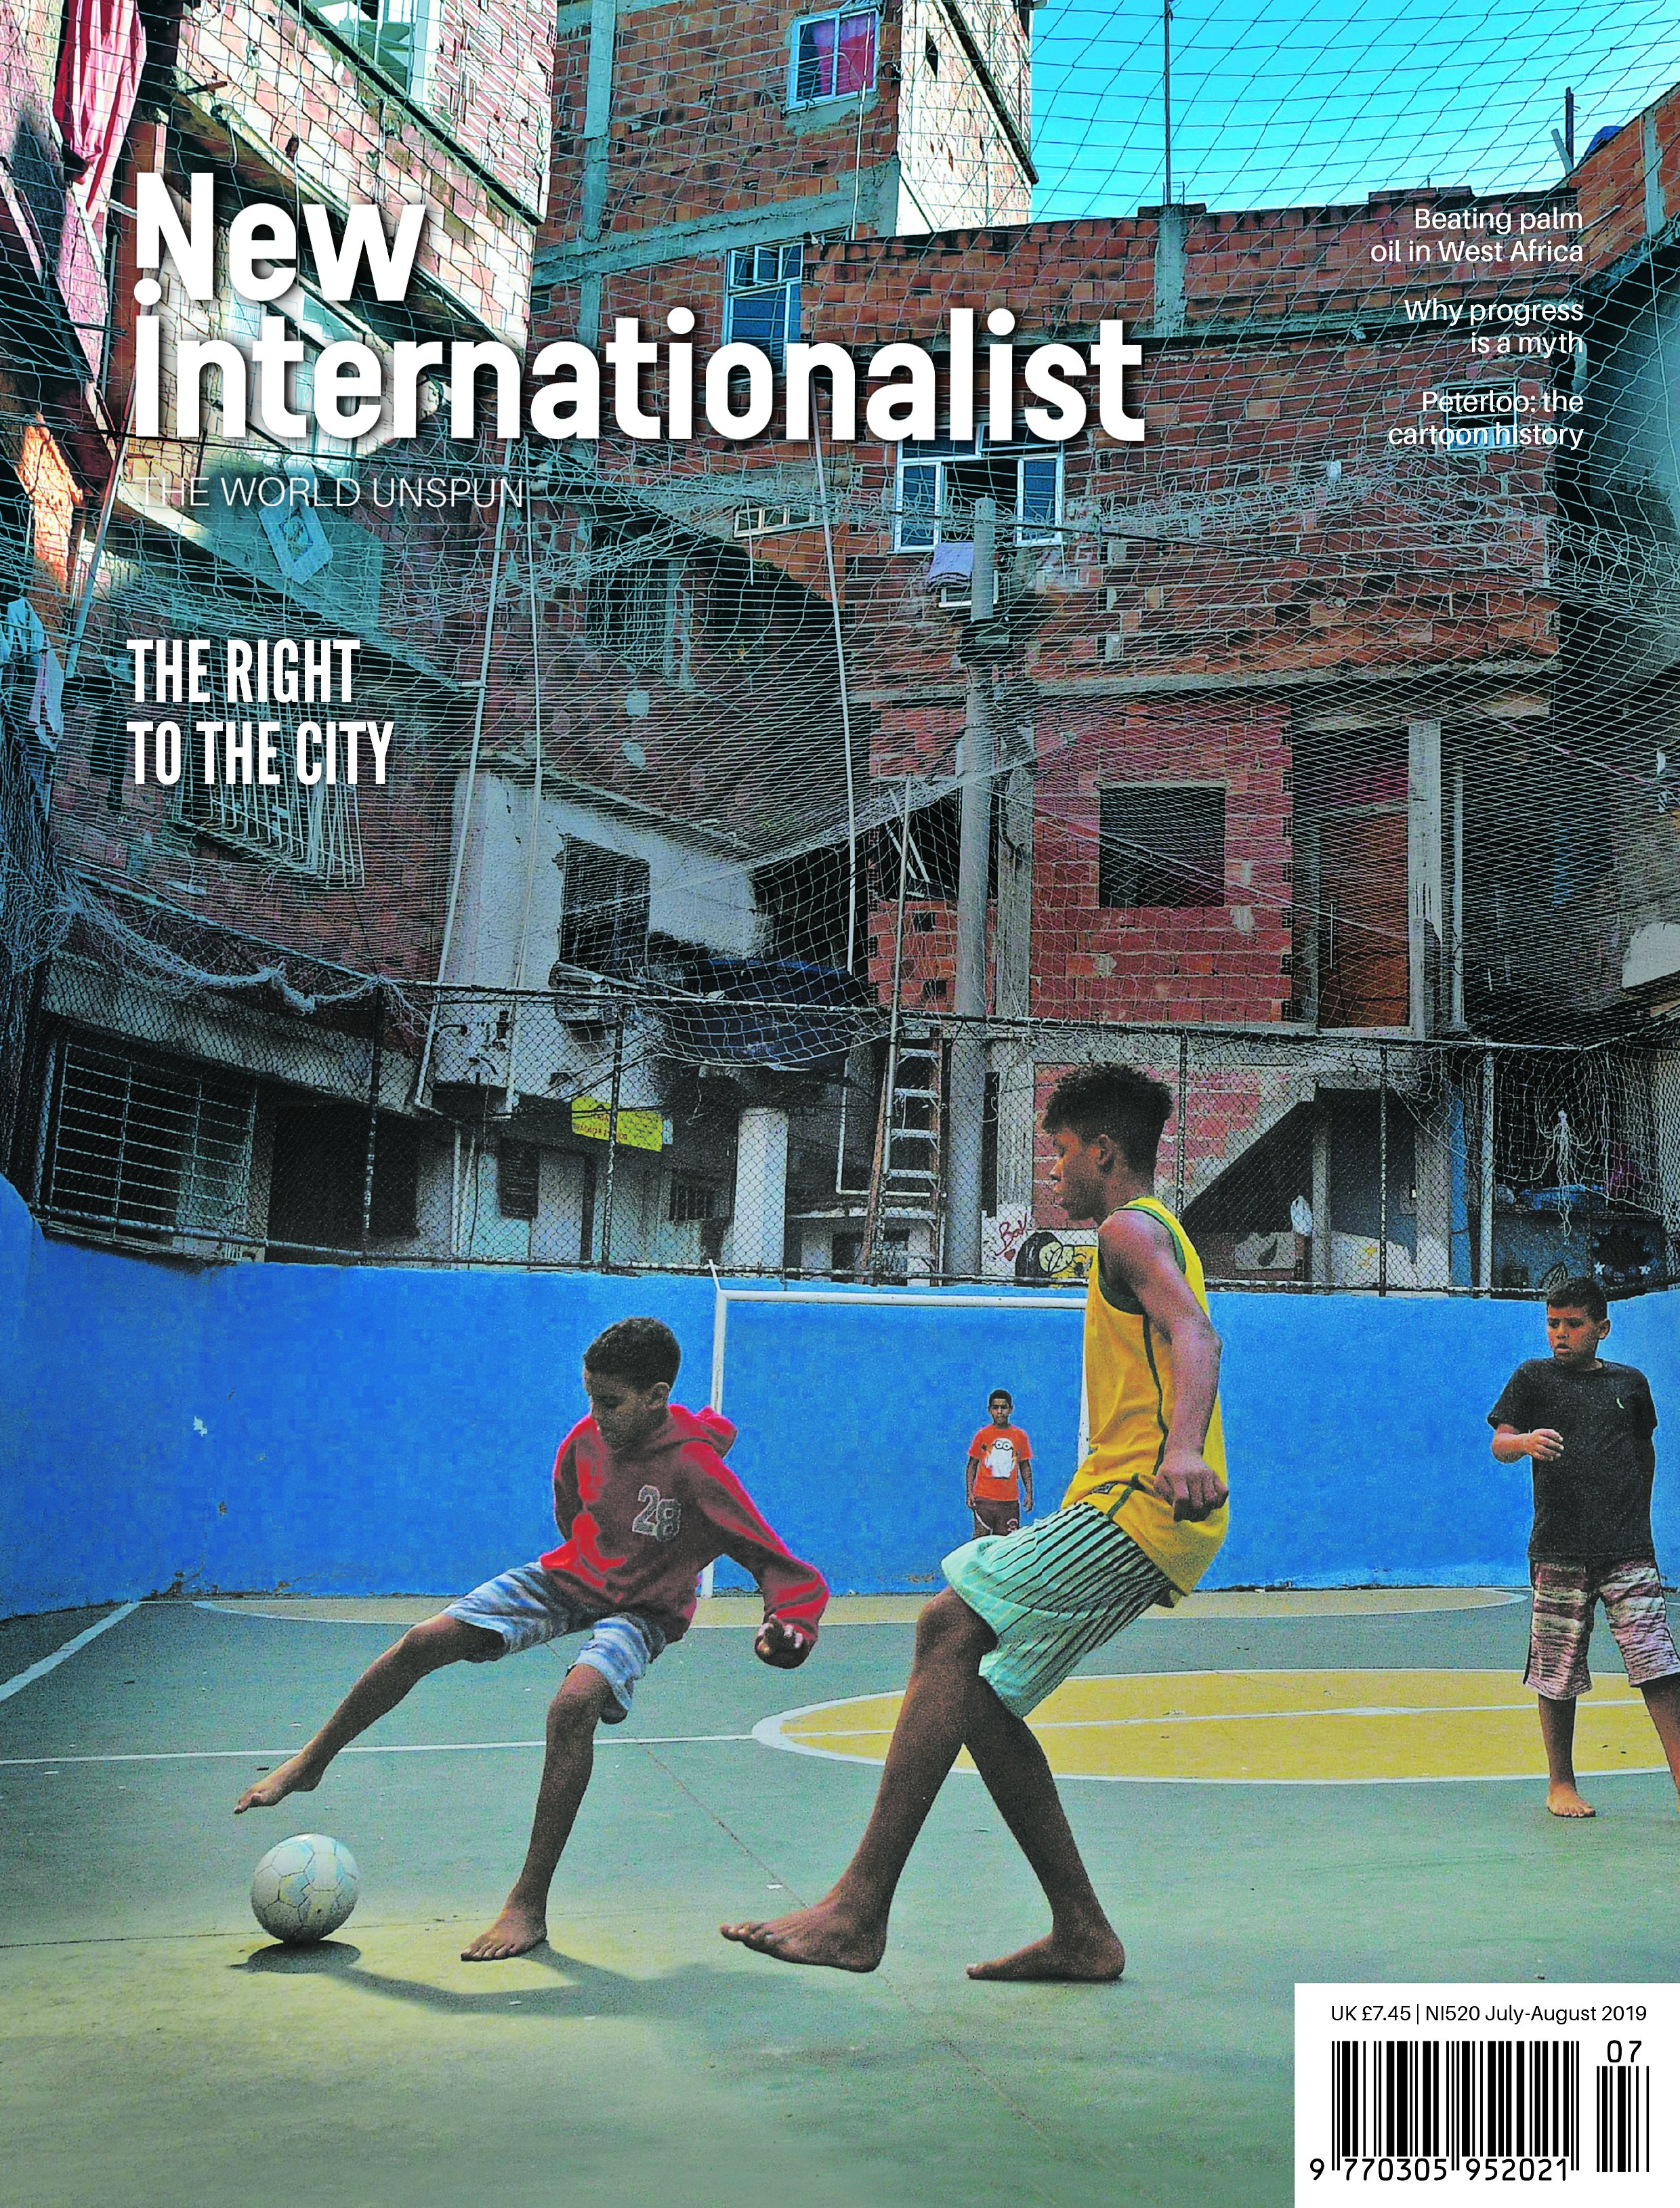 New Internationalist issue 520 magazine cover